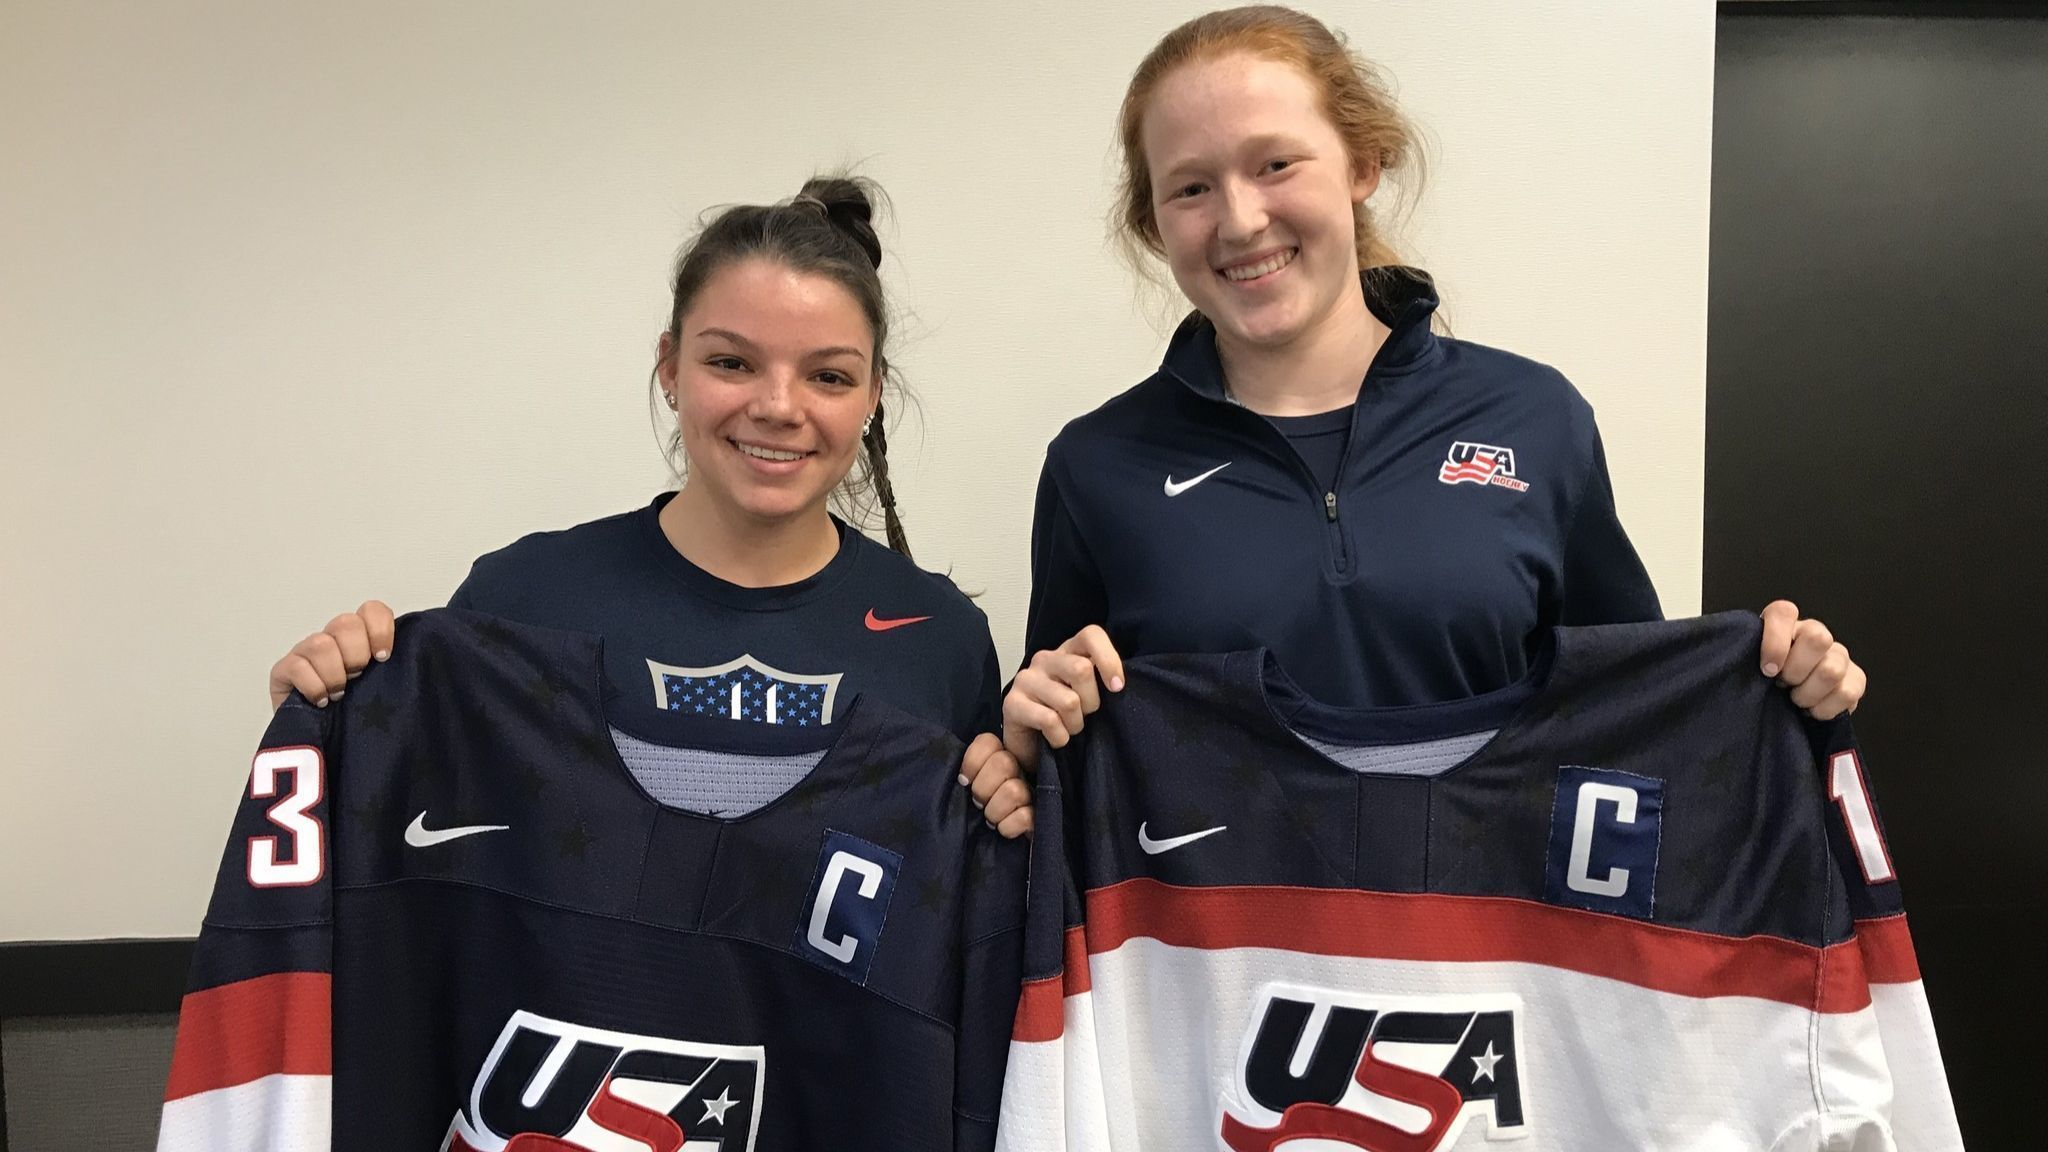 Cayla Barnes and Dominique Petrie help reaffirm the power of Southern California hockey